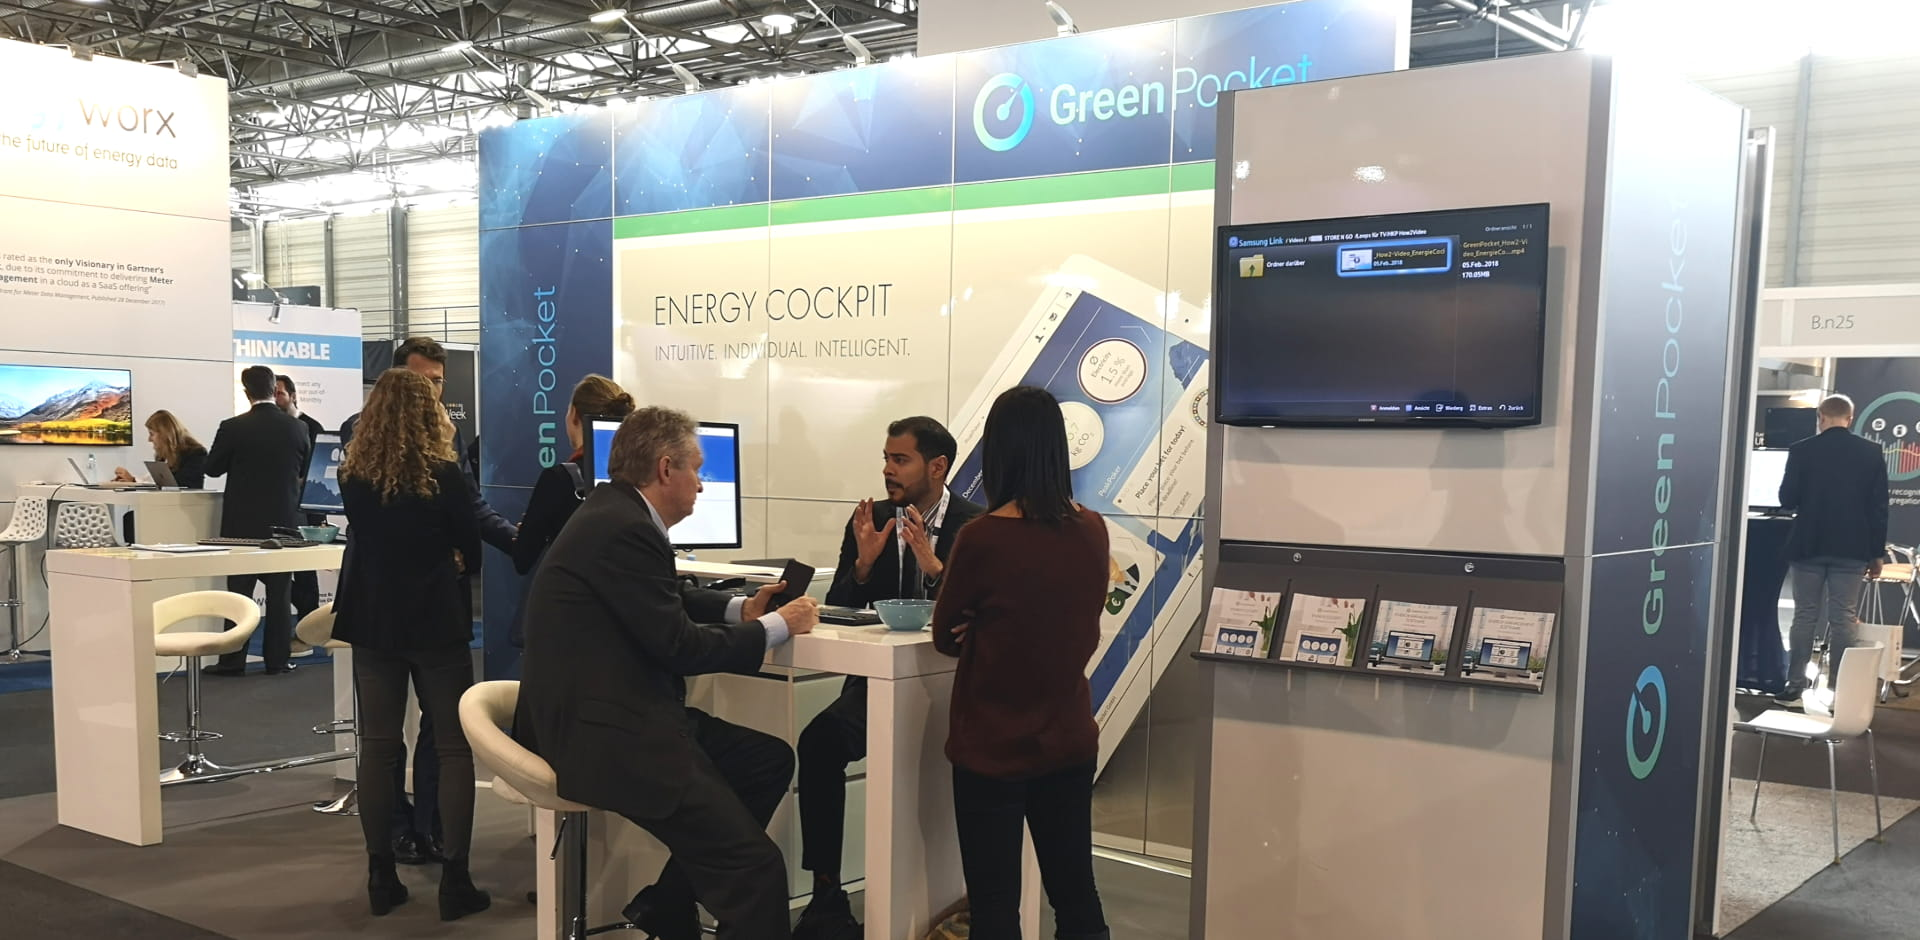 GreenPocket in Vienna: European Utility Week 2018 and PEAKapp final report